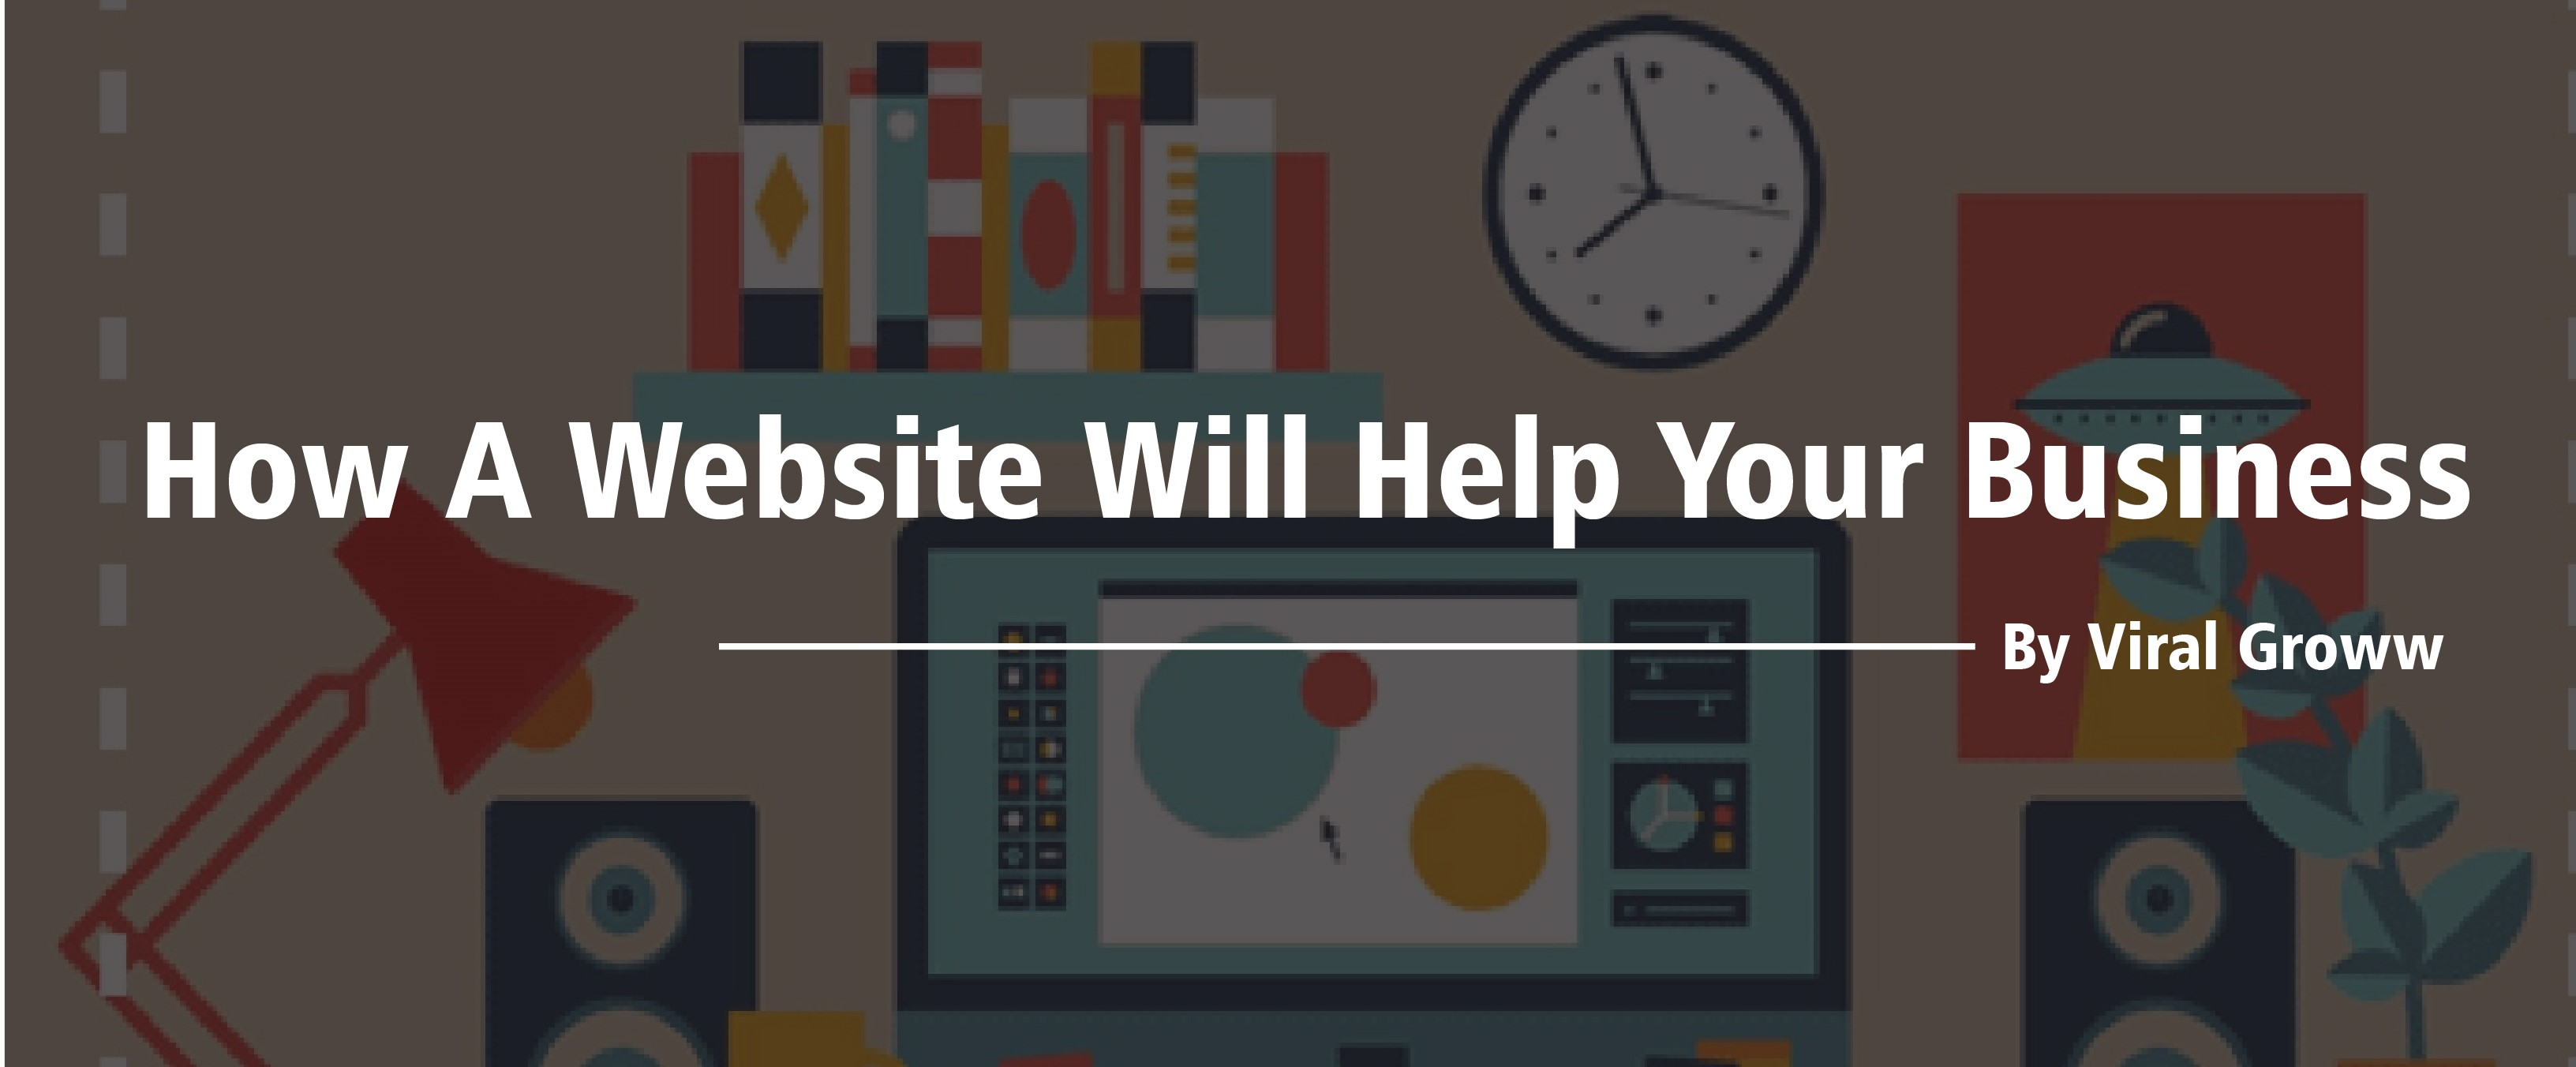 How A Website Will Help Your Business